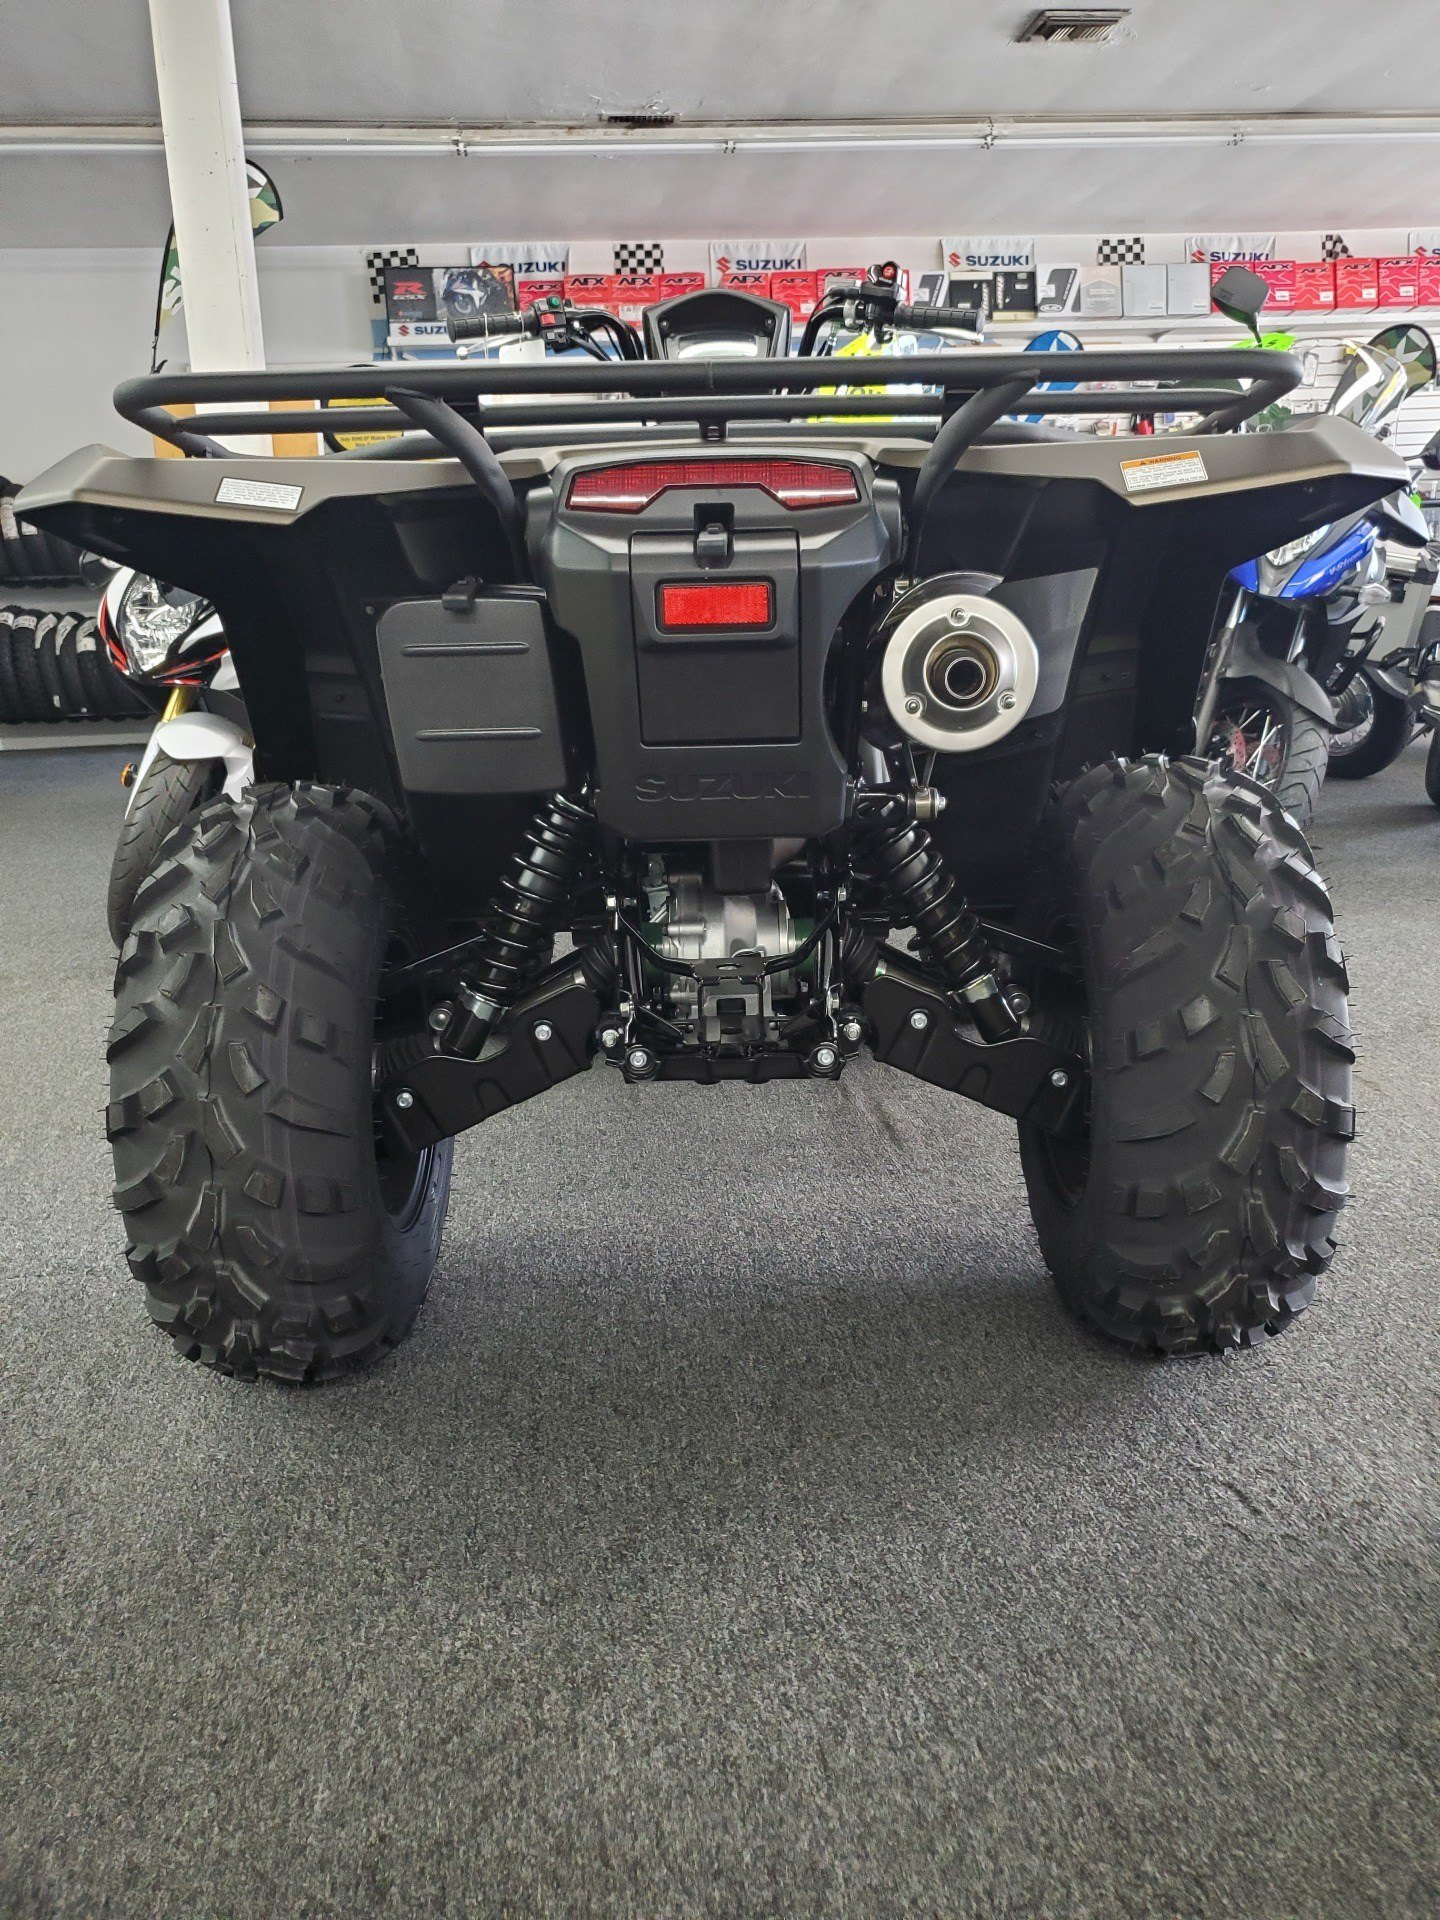 2020 Suzuki KINGQUAD in Van Nuys, California - Photo 2